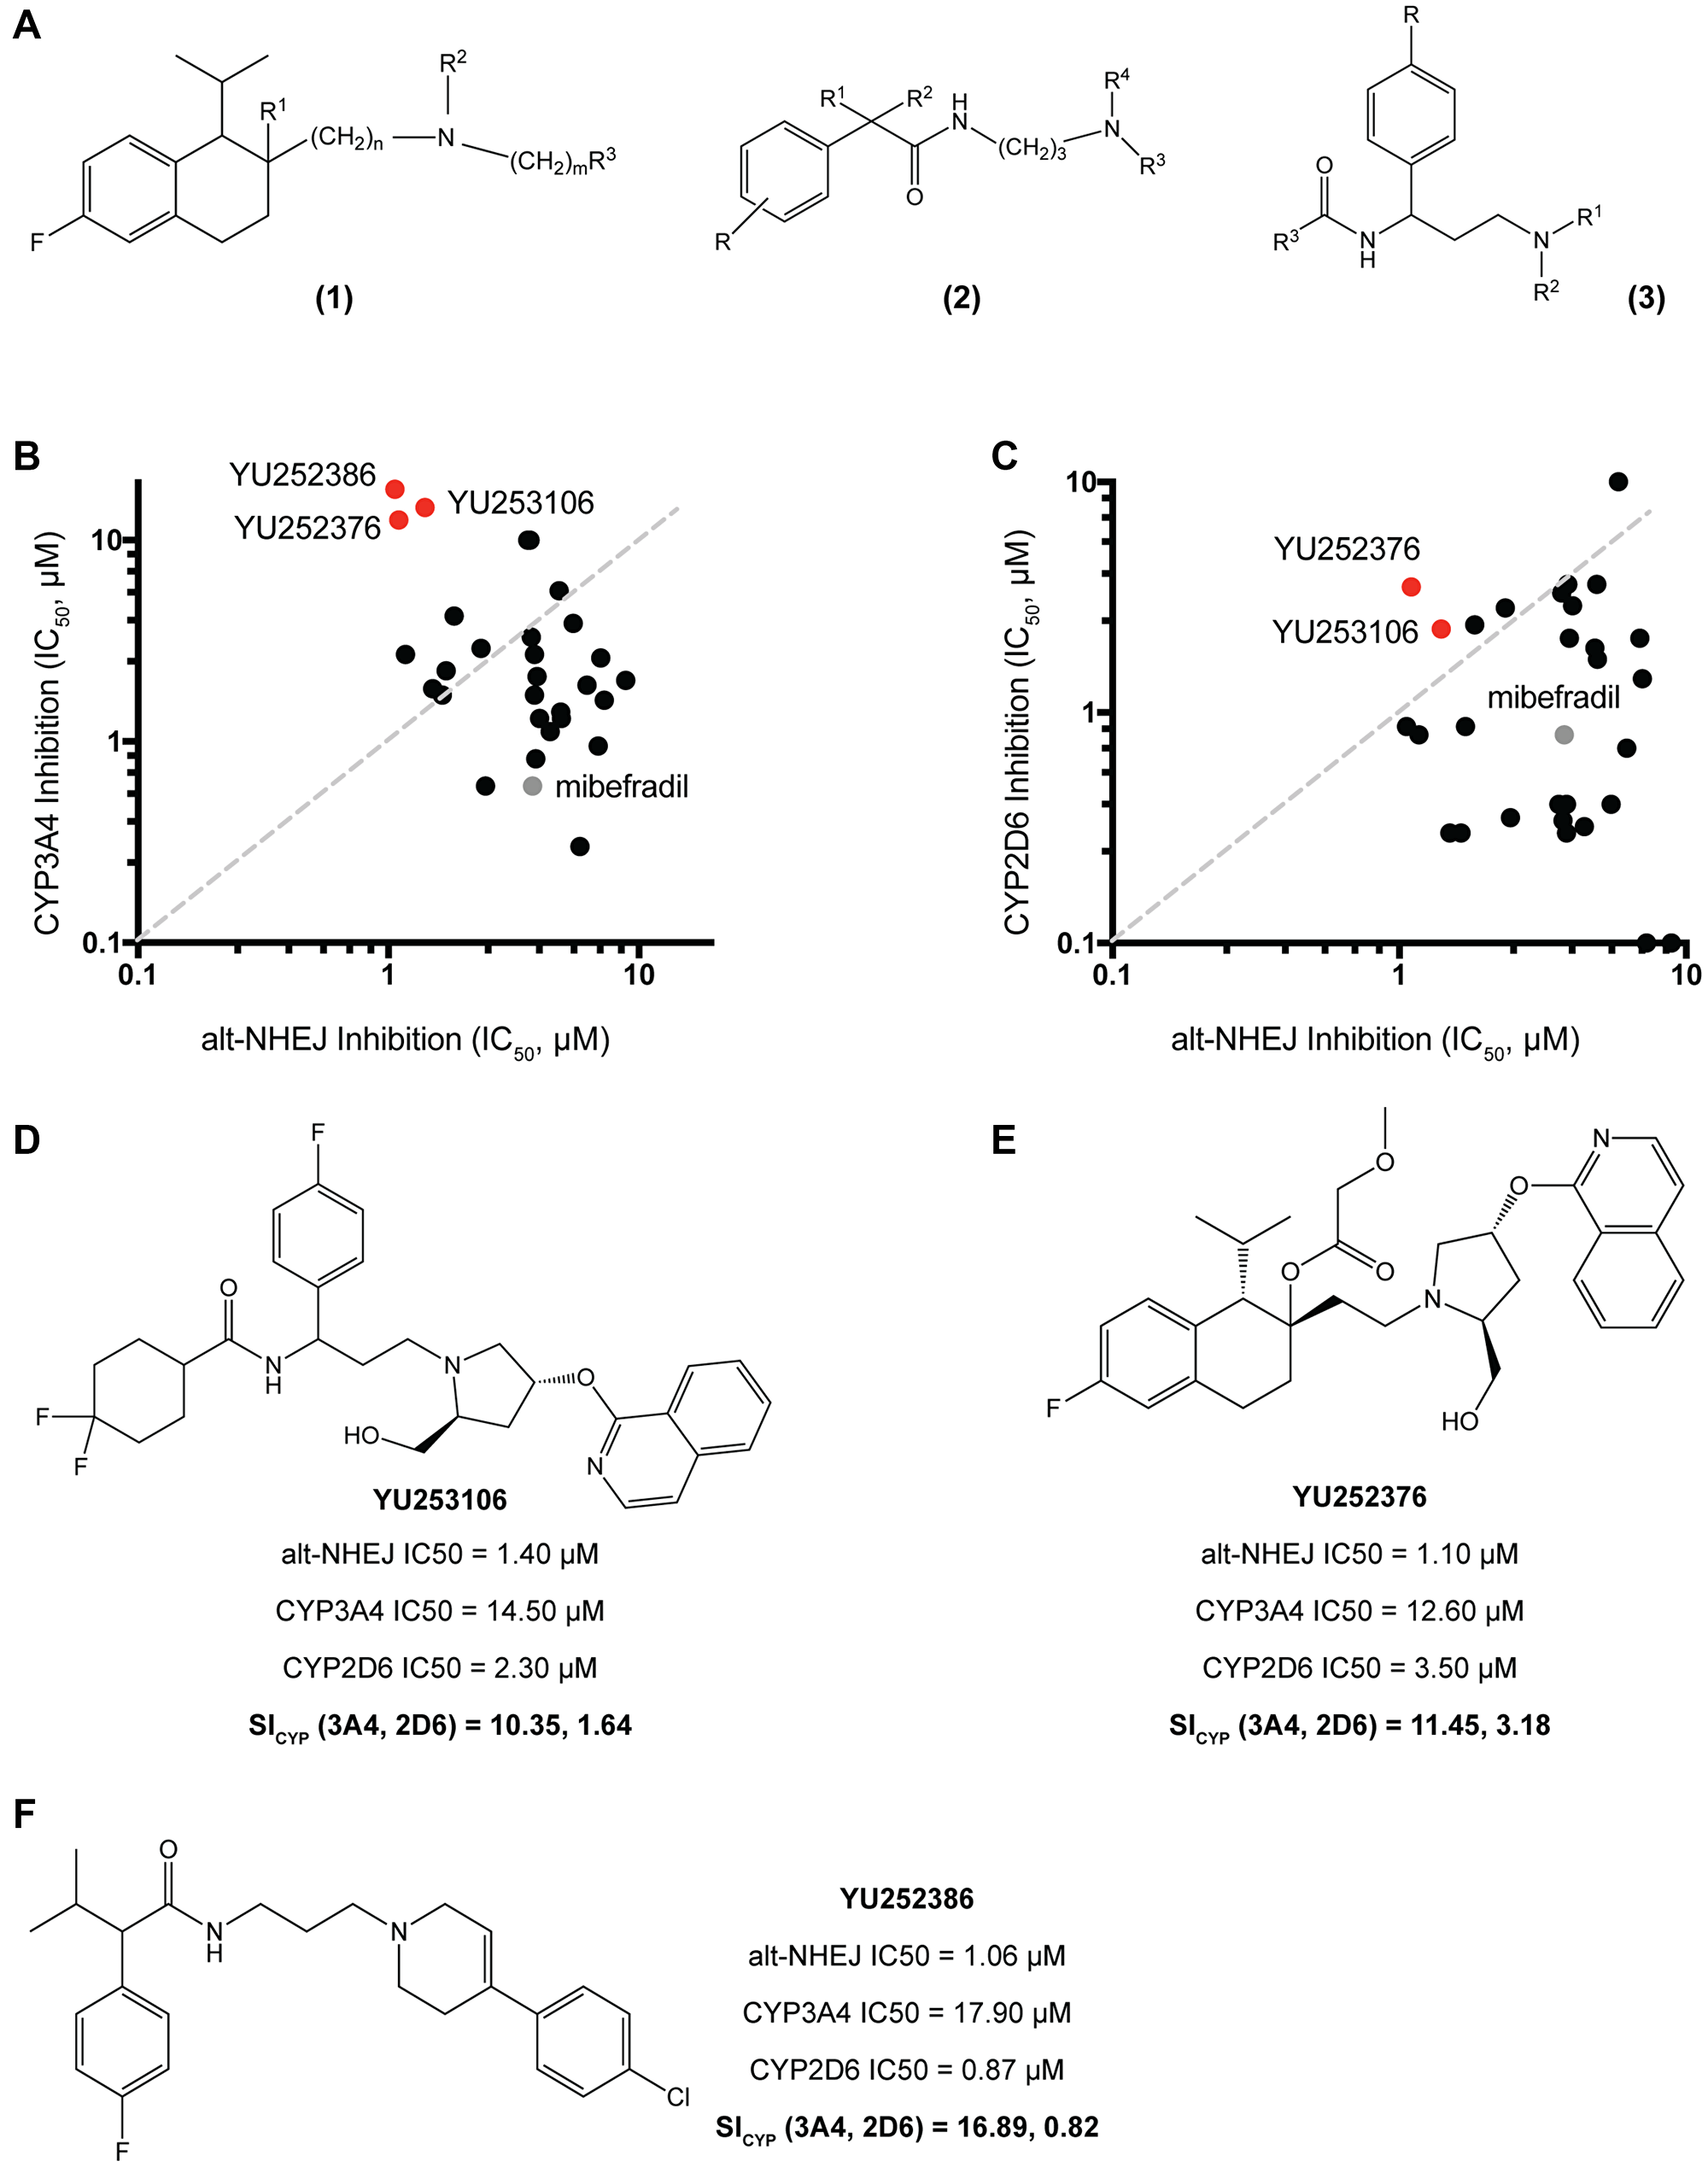 Synthesis and validation of mibefradil analogues with reduced CYP3A4 and CYP2D6 activity.